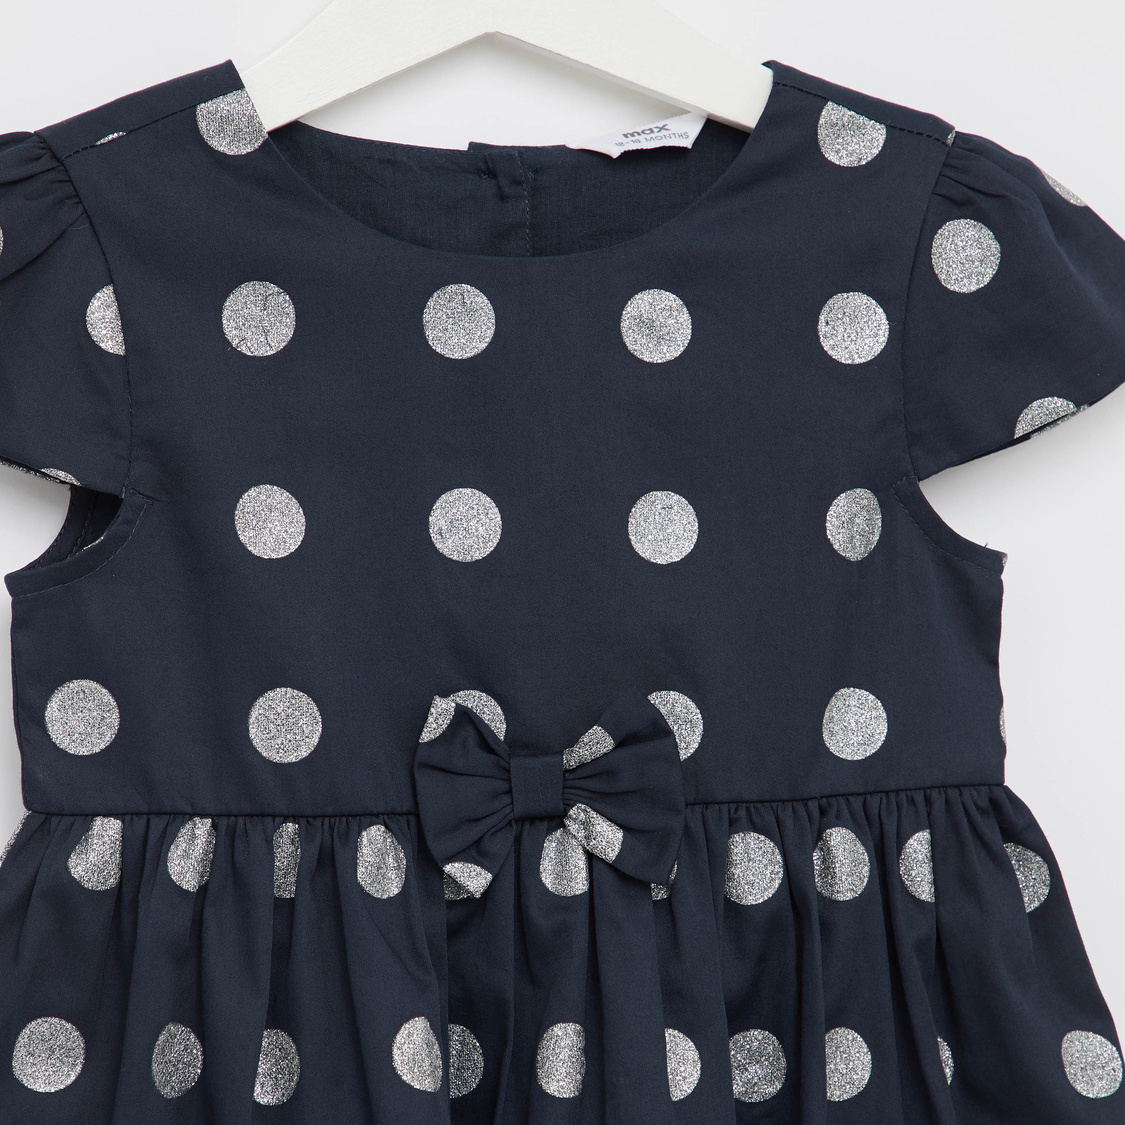 Glitter Spot Print Dress with Round Neck and Cap Sleeves